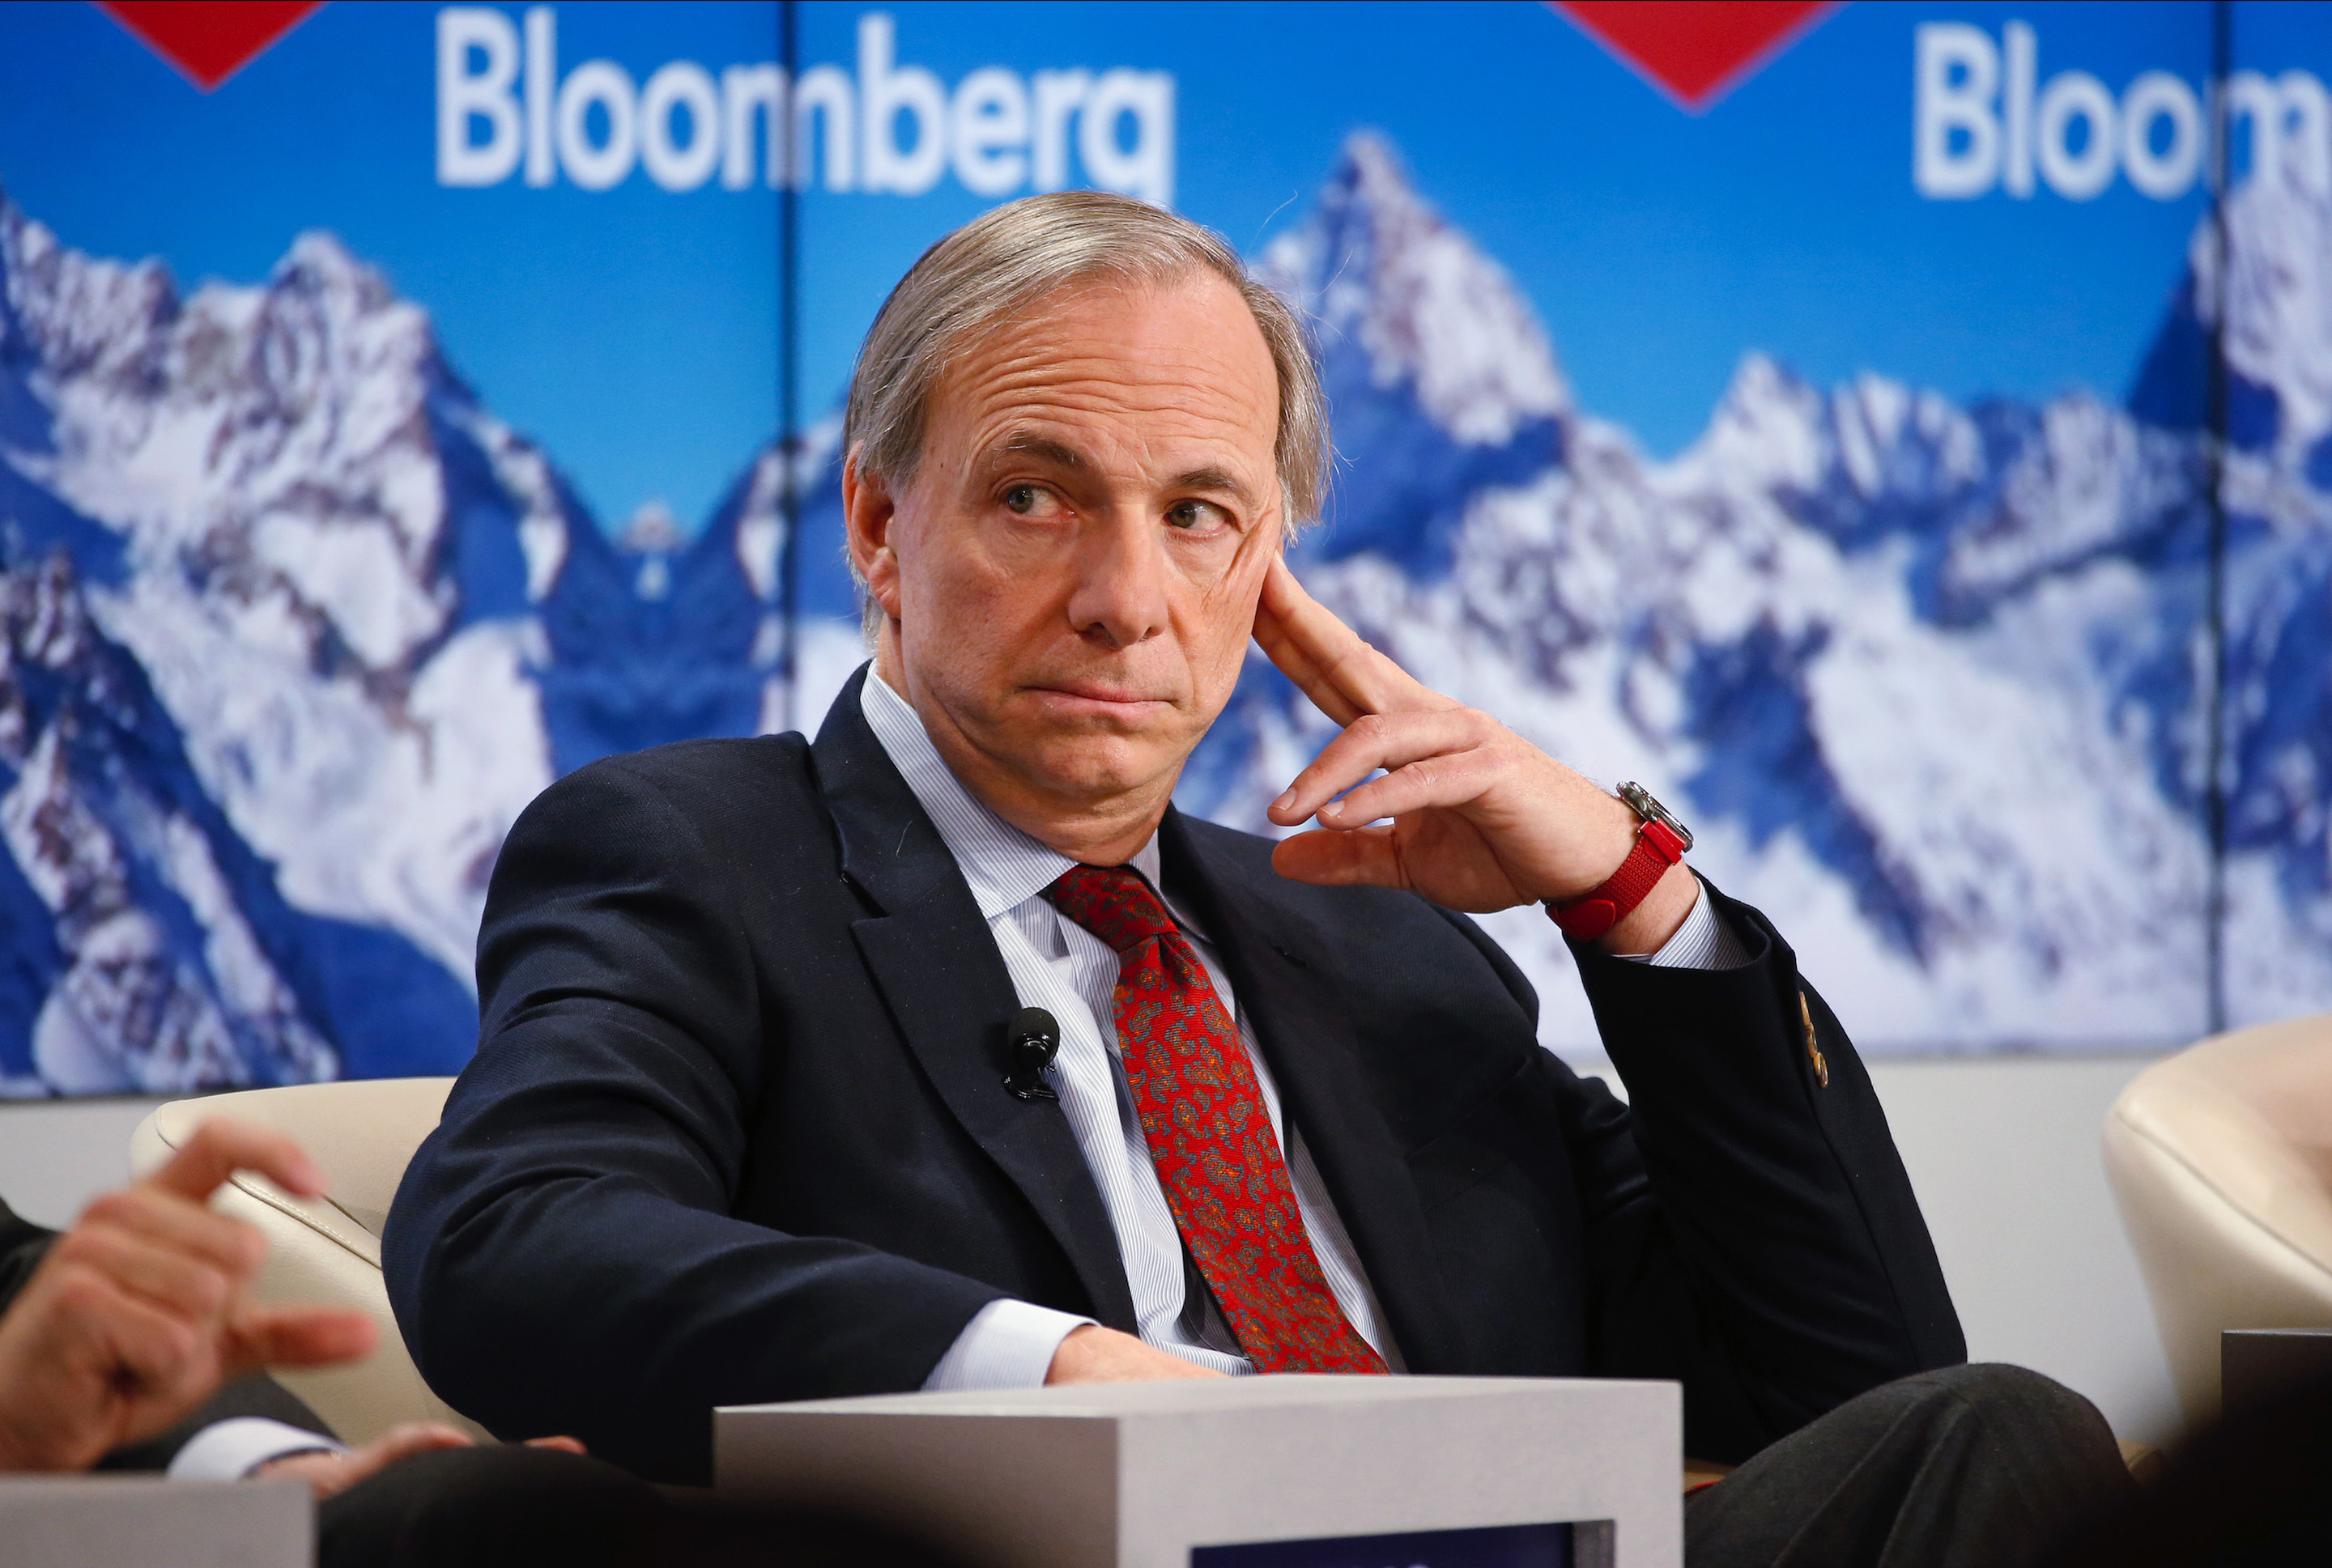 Ray Dalio at Davos World Economic Forum 2015